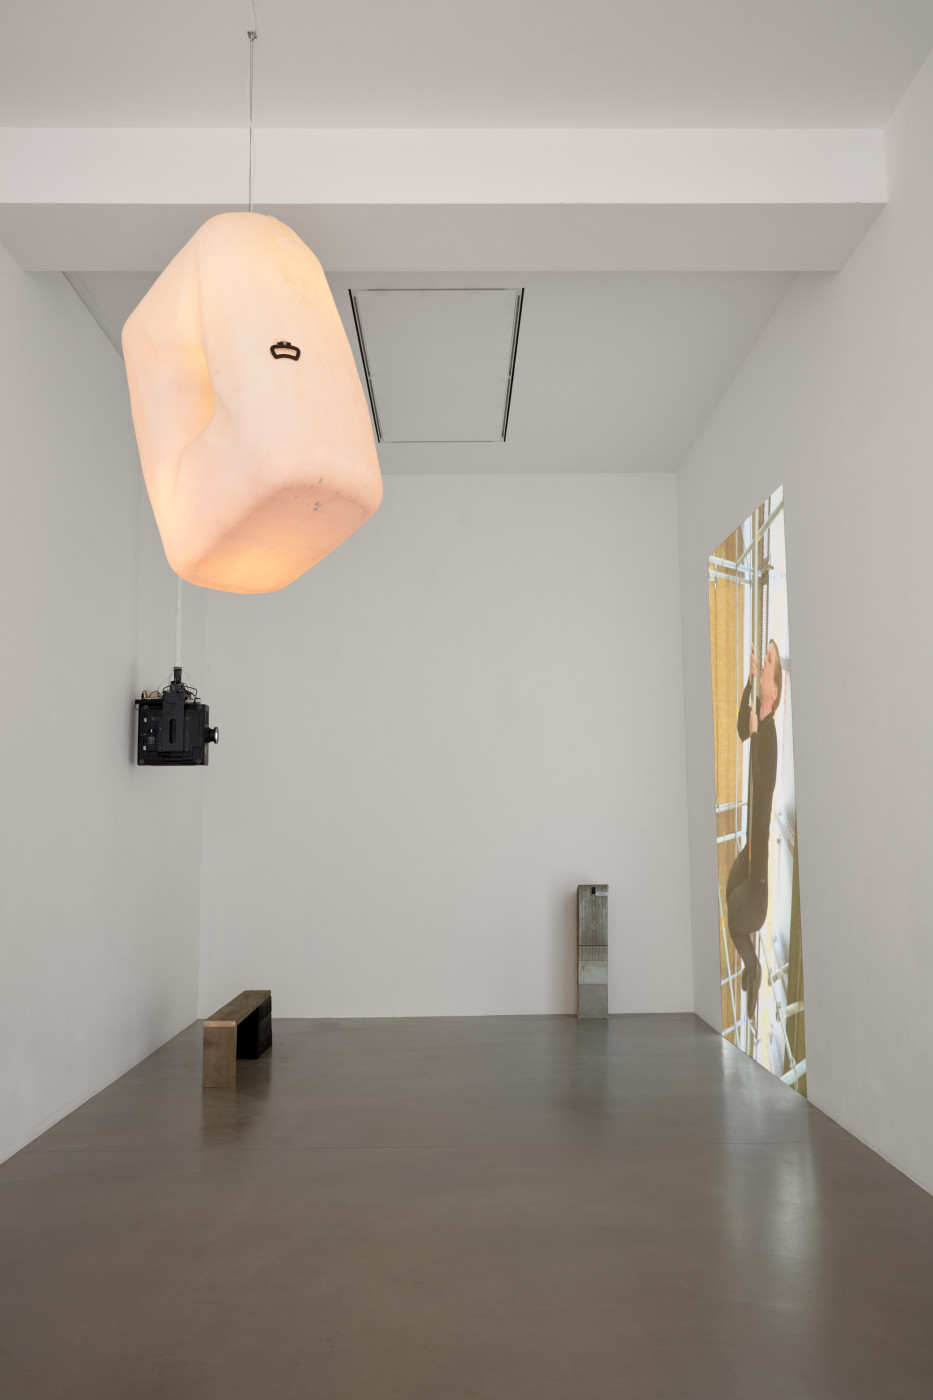 "<div class=""artwork_caption""><p>Installation view, Klara Liden, 1 Davies Street W1, 3 September - 24 October 2020</p><p>Photography by Robert Glowacki</p></div>"